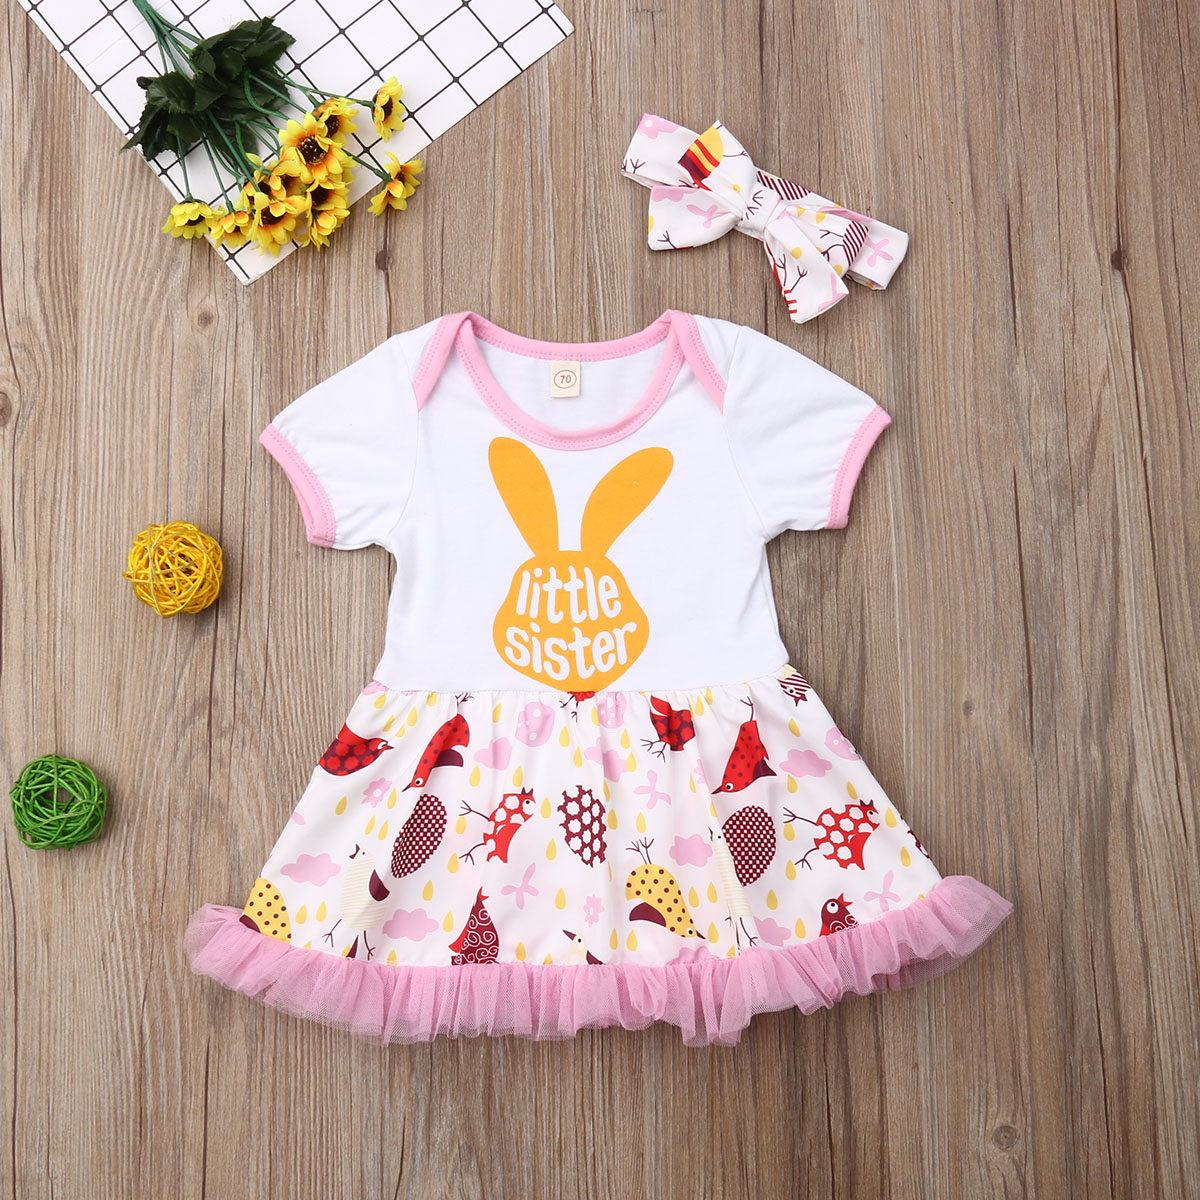 Imcute Baby Girls Cartoon Dress Princess Tutu Dresses Little Sister Clothes in Dresses from Mother Kids